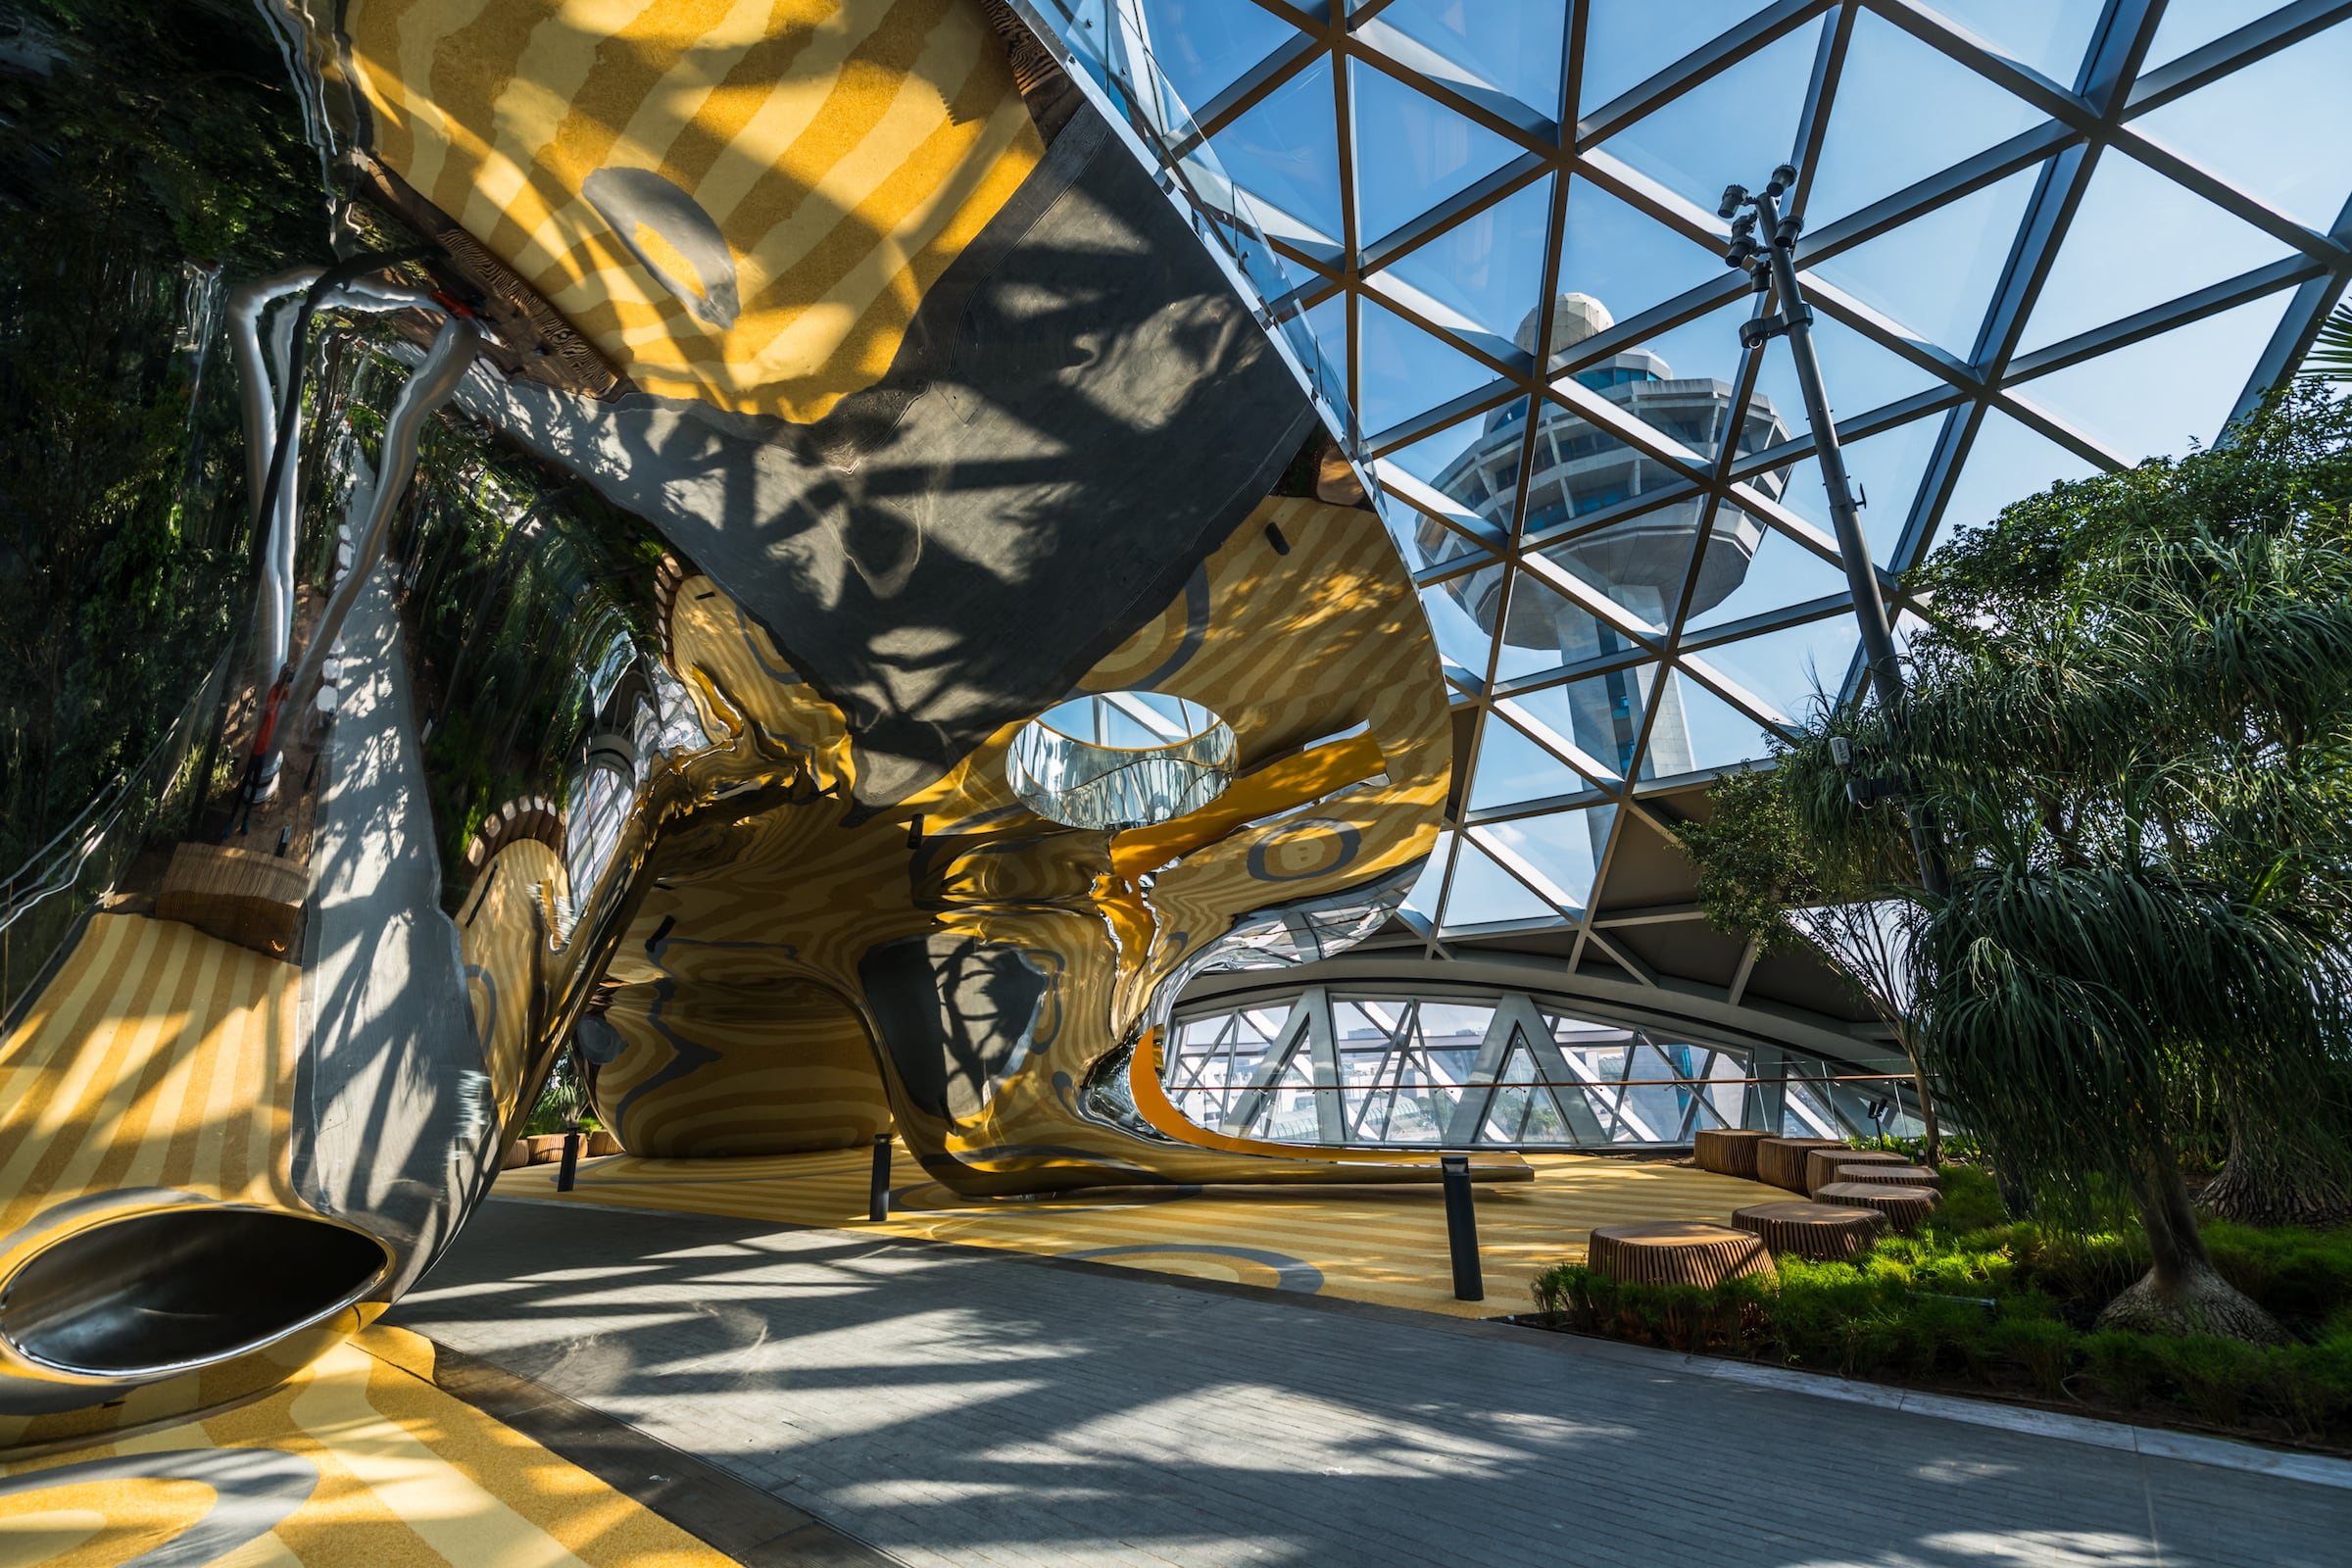 Discovery Slide at Jewel Changi Airport, Mirror stainless steel slides manufacturer